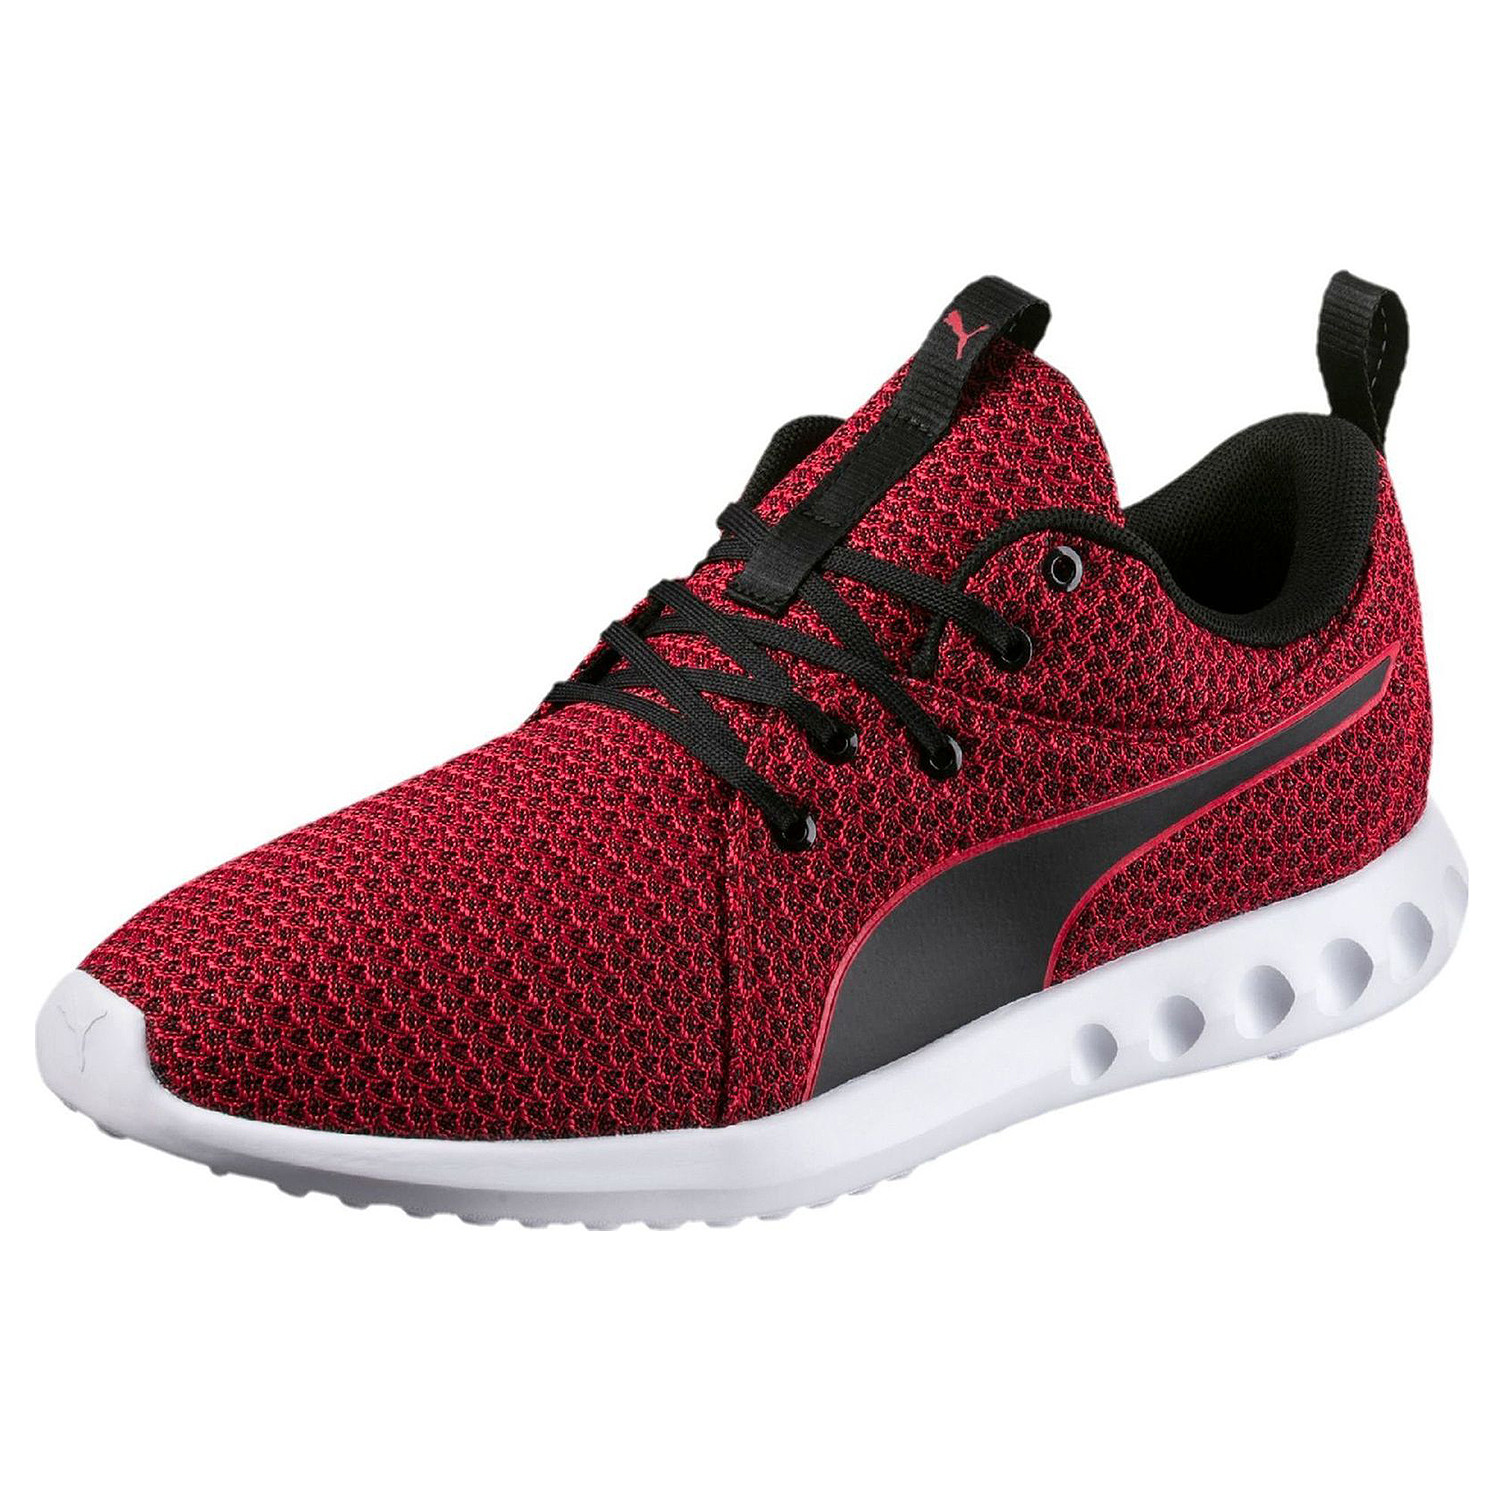 7f68cdbff96f9 Carson 2 Knit Chaussure Homme PUMA ROUGE pas cher - Chaussures ...